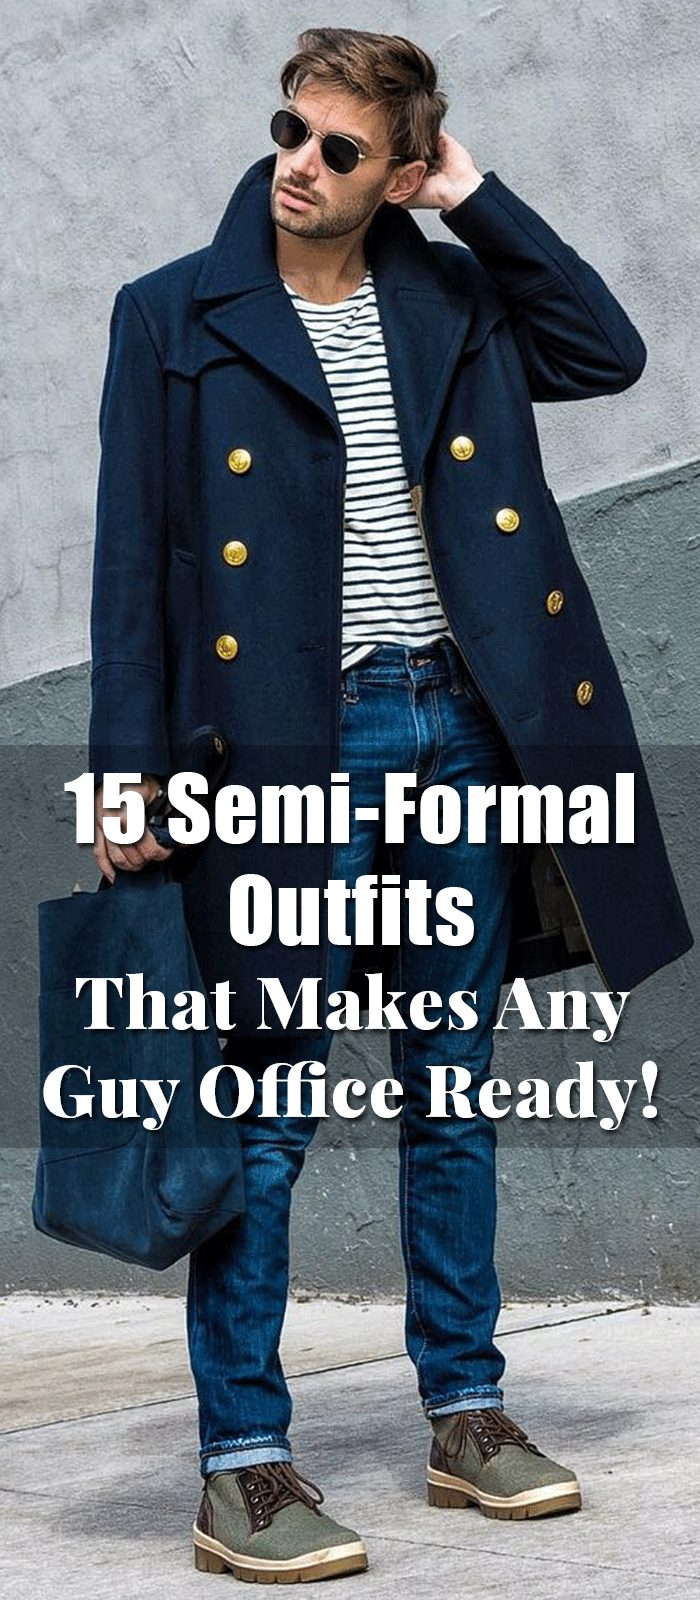 15 Semi-Formal Outfits That Makes Any Guy Office Ready!